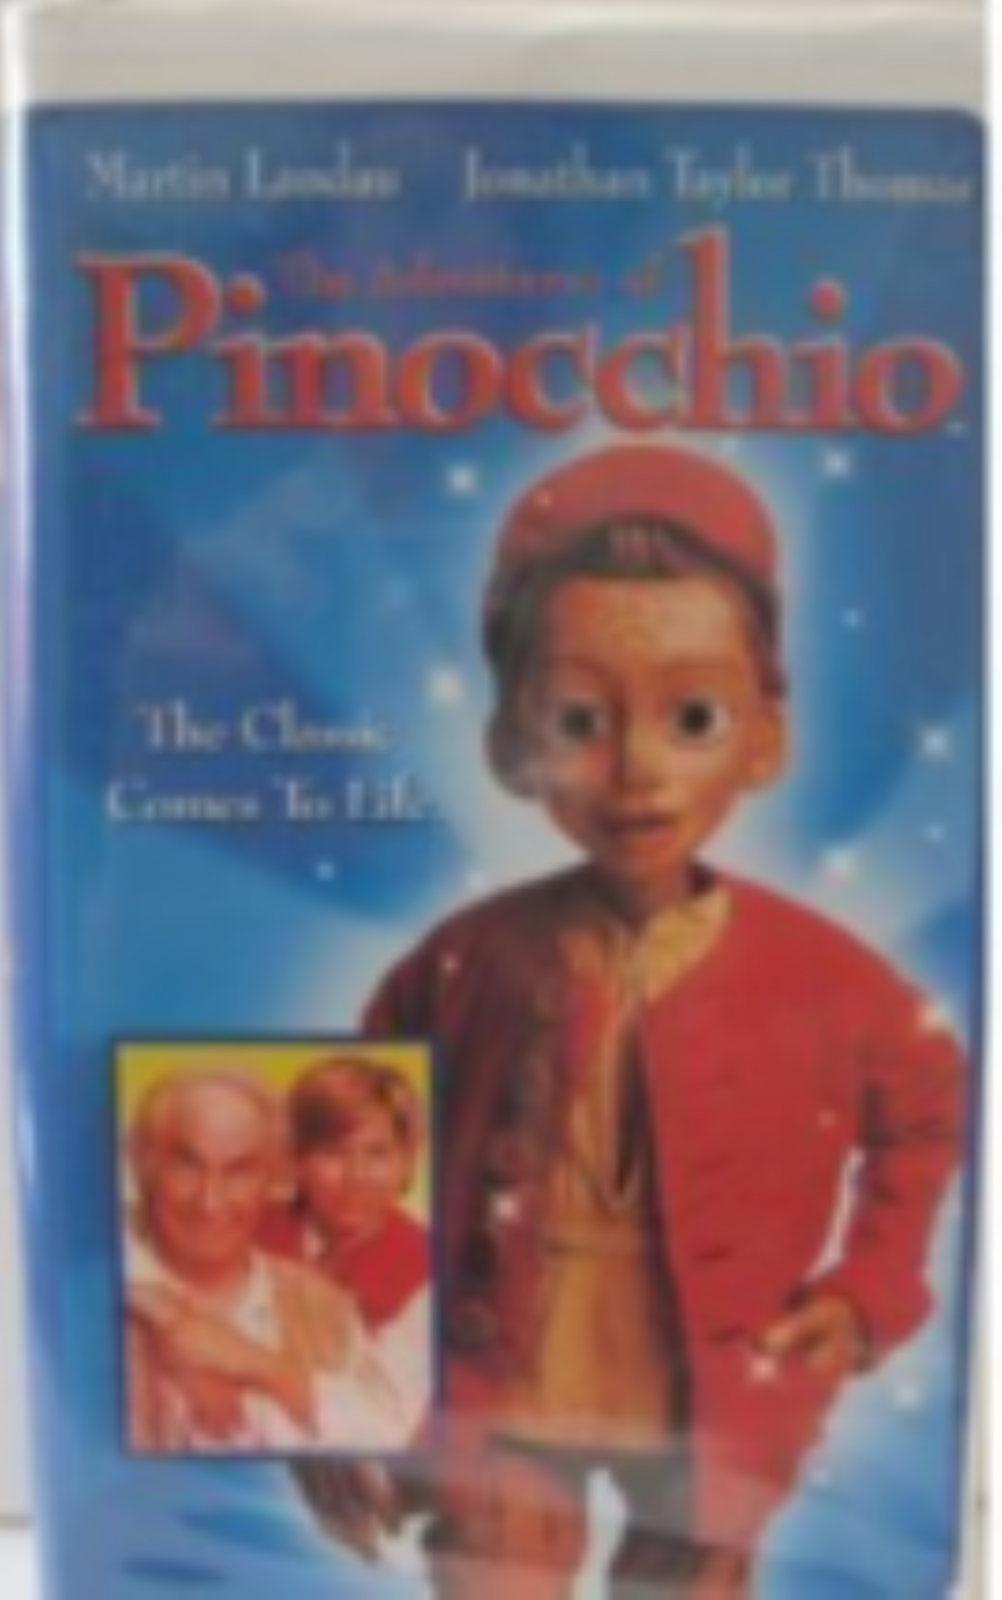 The Adventures of Pinocchio Vhs